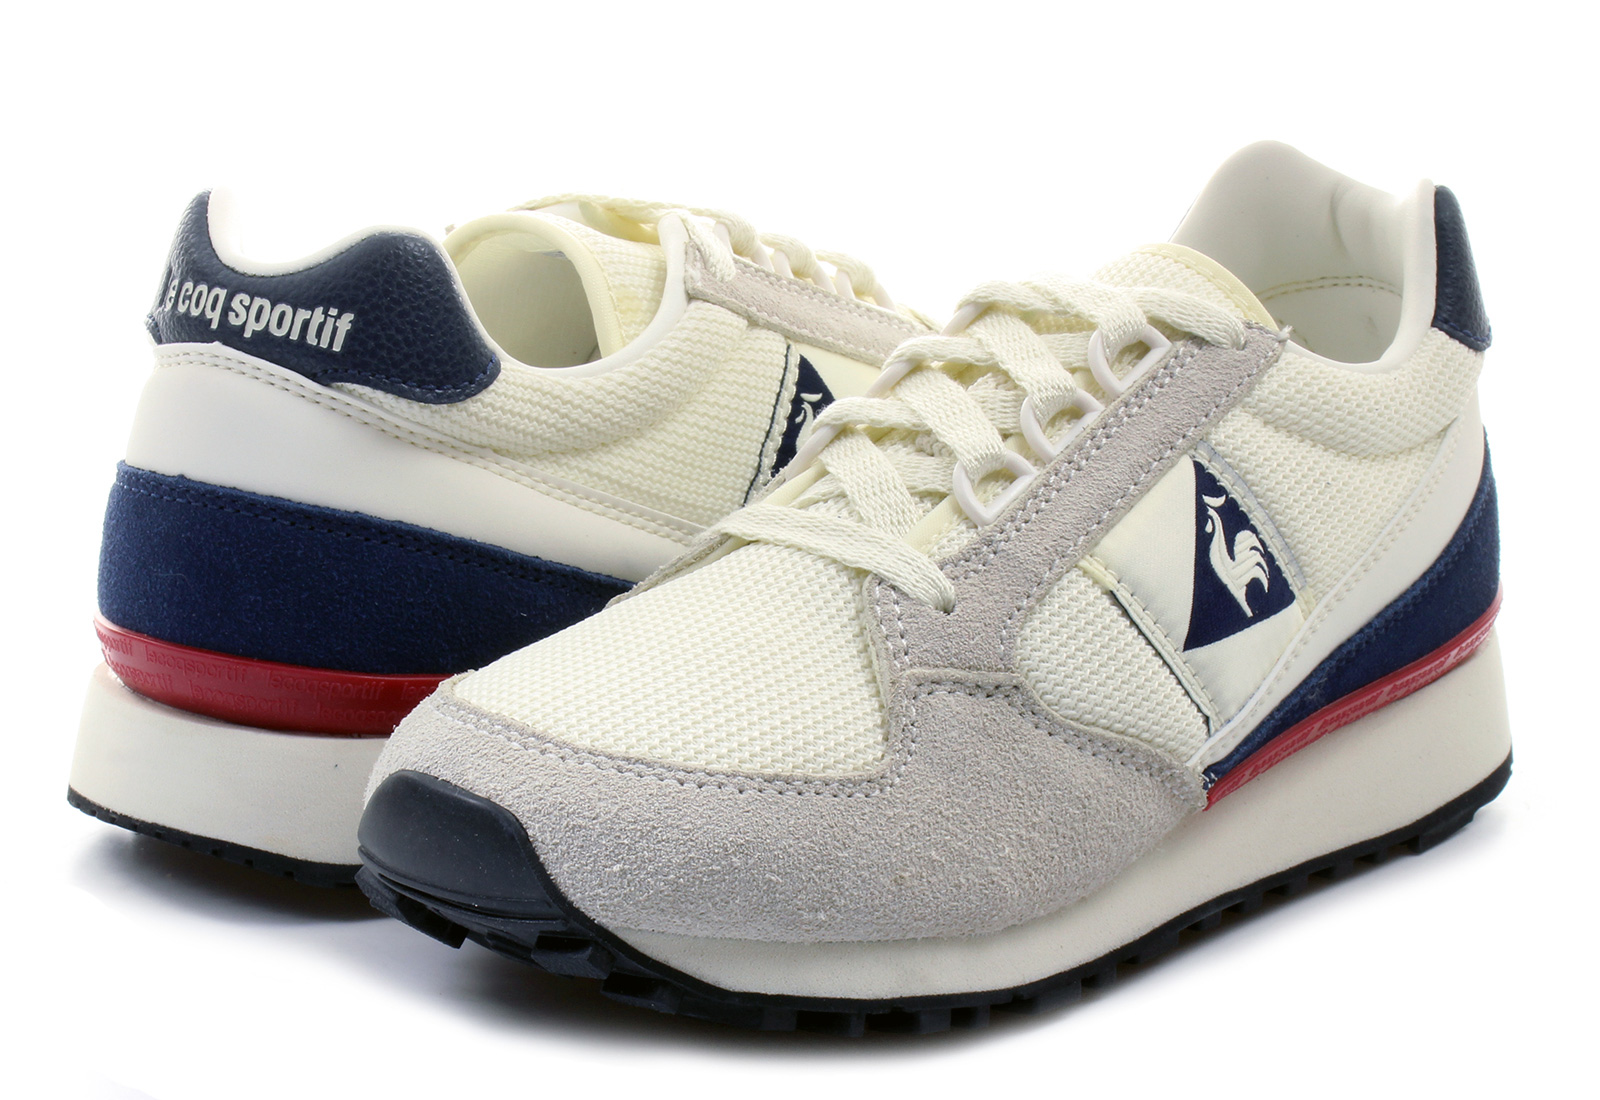 Le Coq Sportif Basketball Shoes